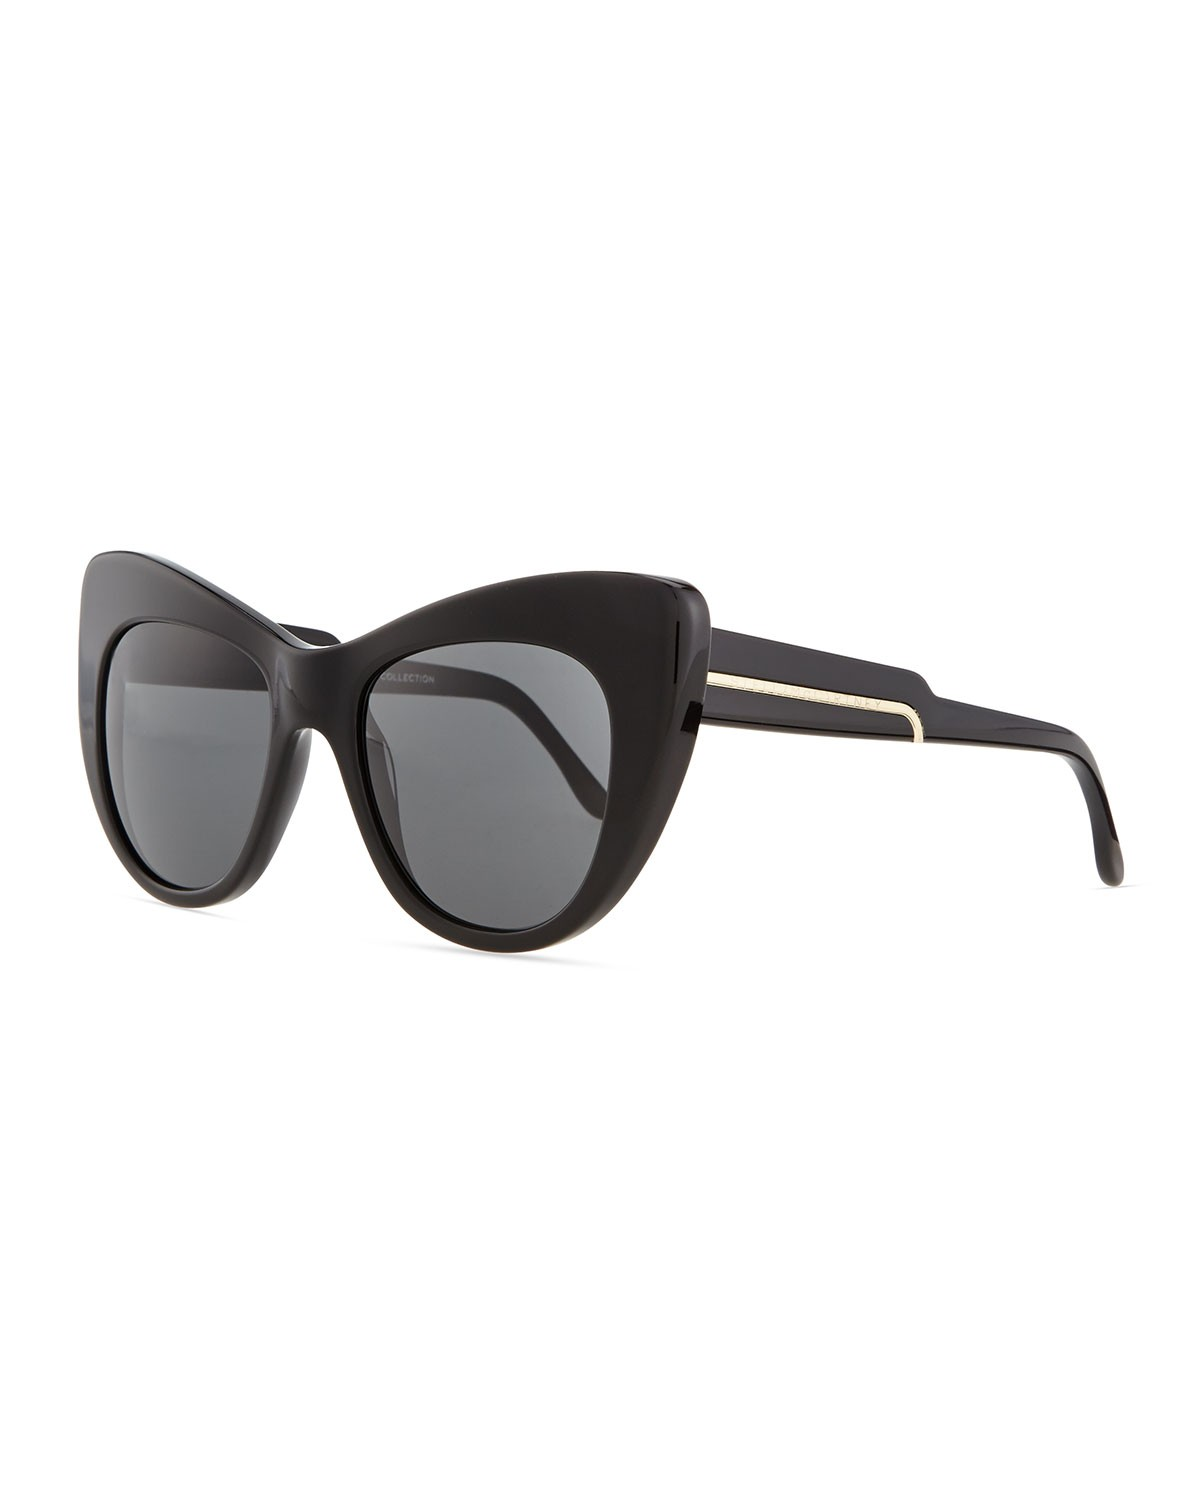 Thick Plastic Cat-Eye Sunglasses, Black - Stella McCartney - Black